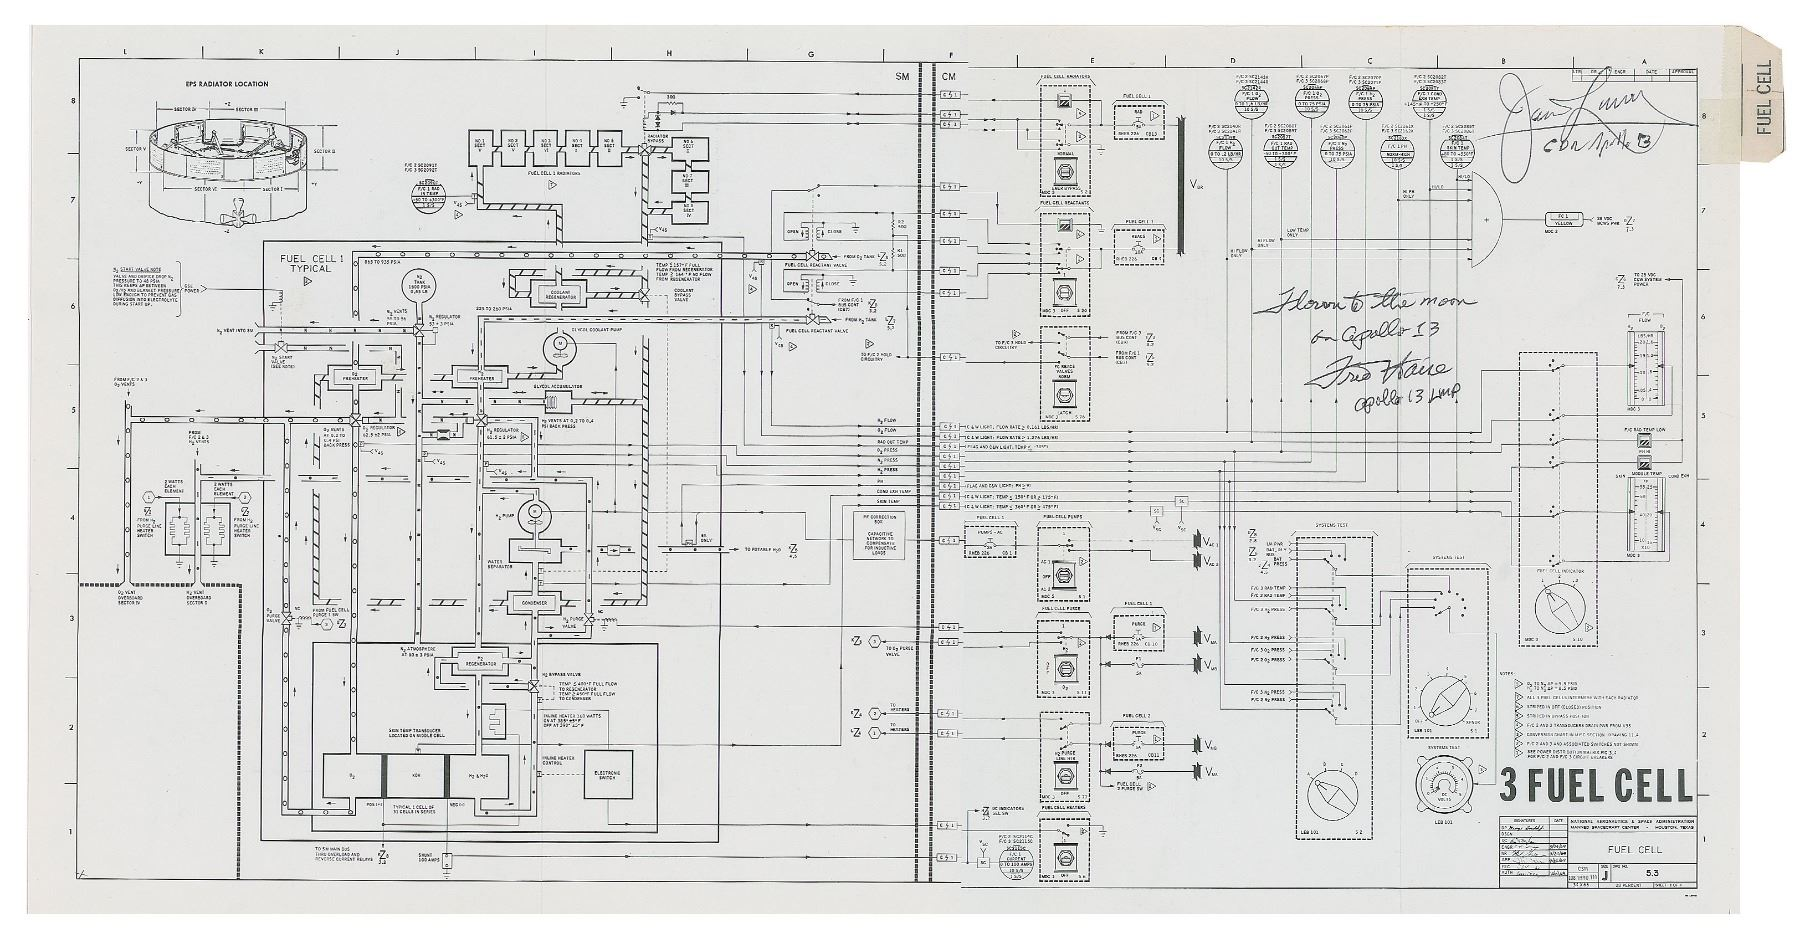 Apollo 13 Flown Fuel Cell Schematic